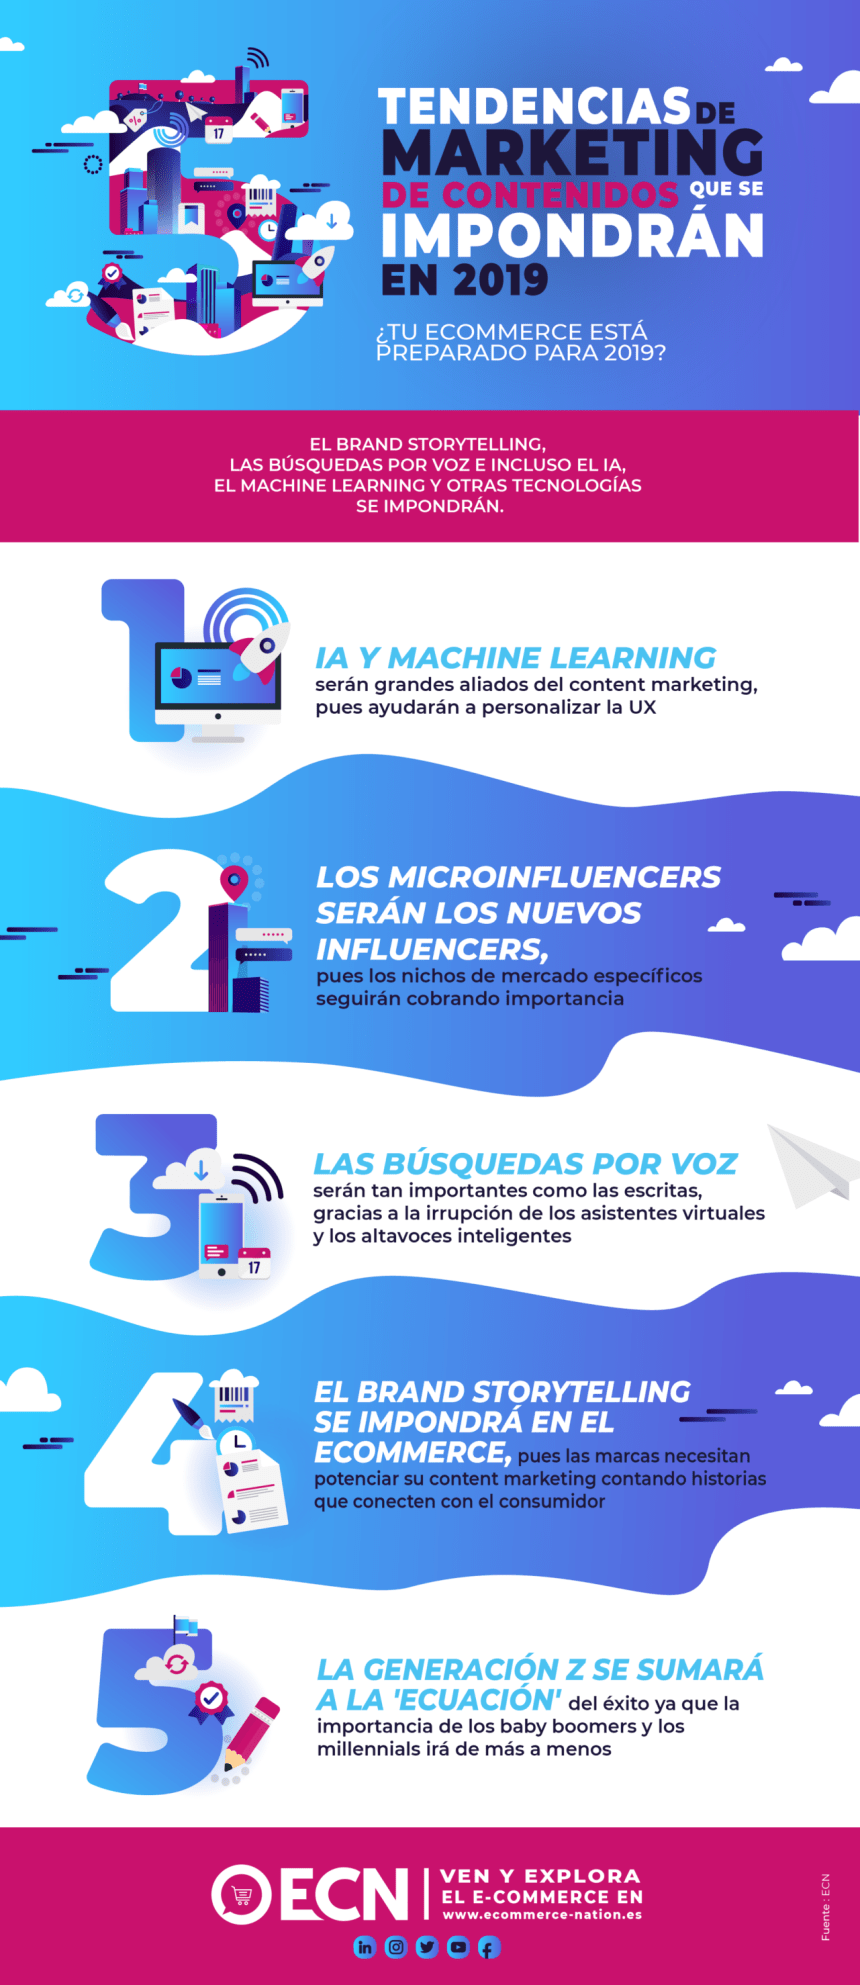 5 tendencias de Marketing de Contenidos #infografia #infographic #marketing